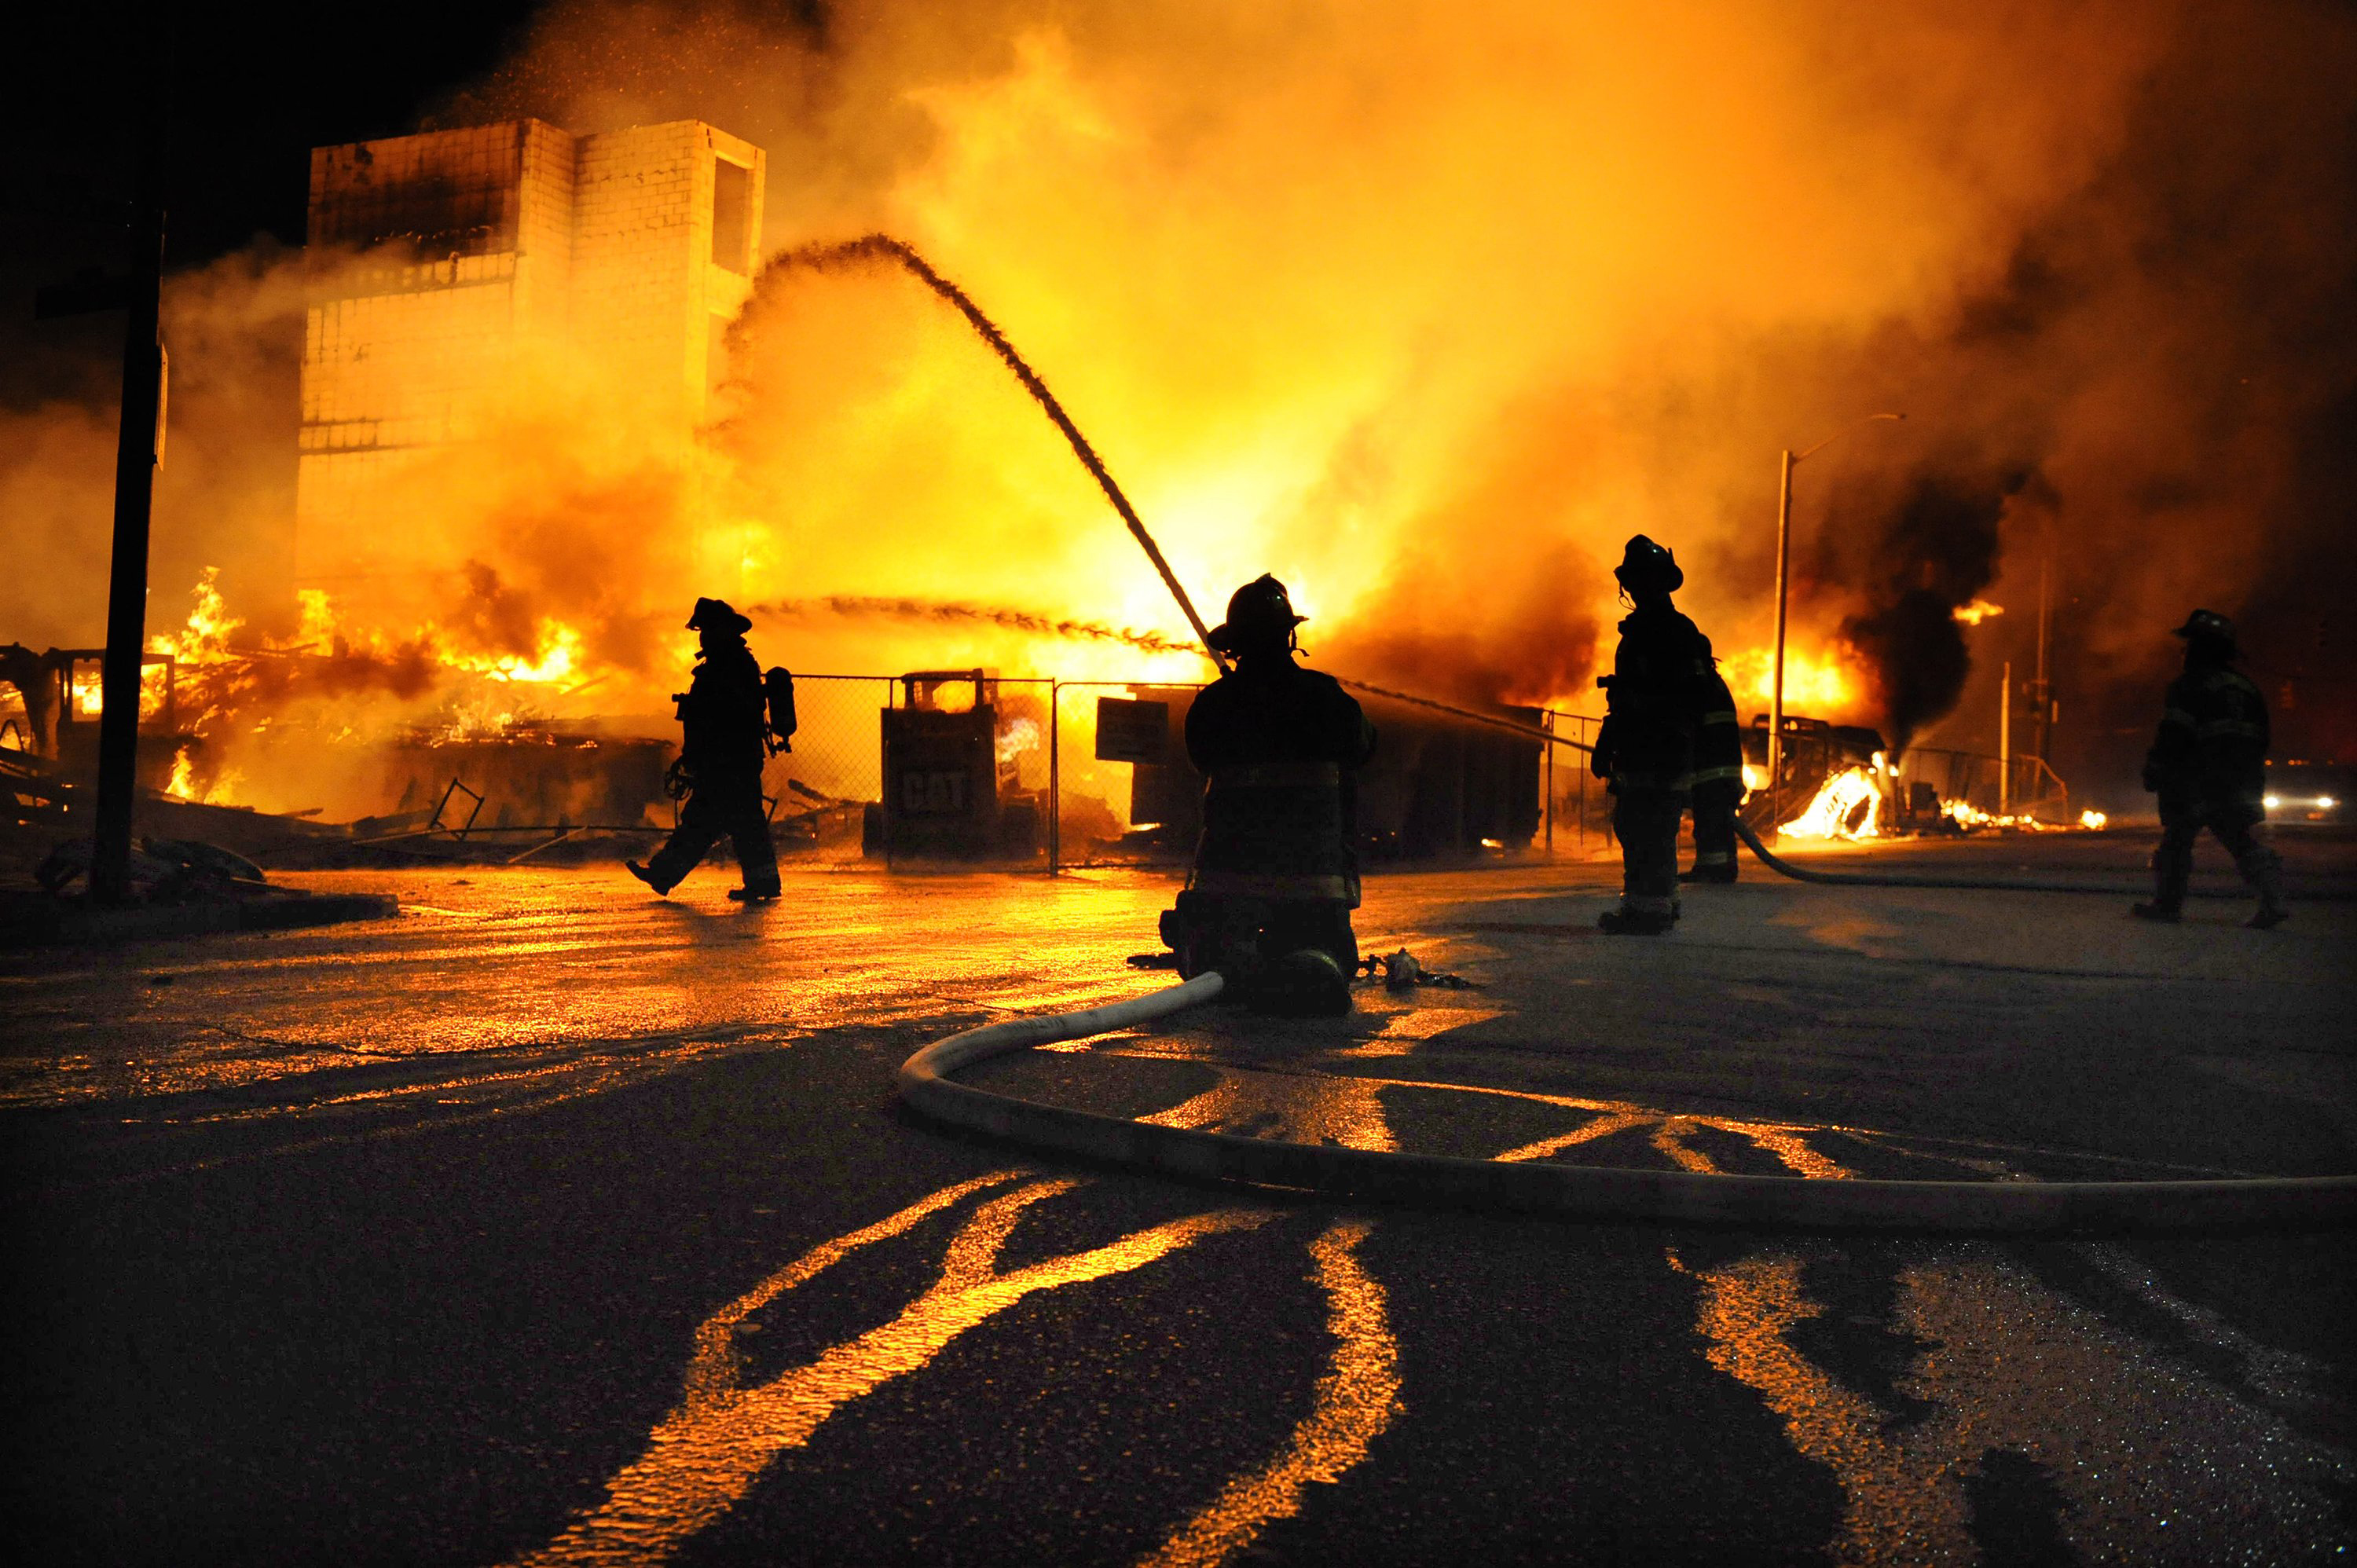 Firefighters battle a blaze after riots in Baltimore on  April 27, 2015.